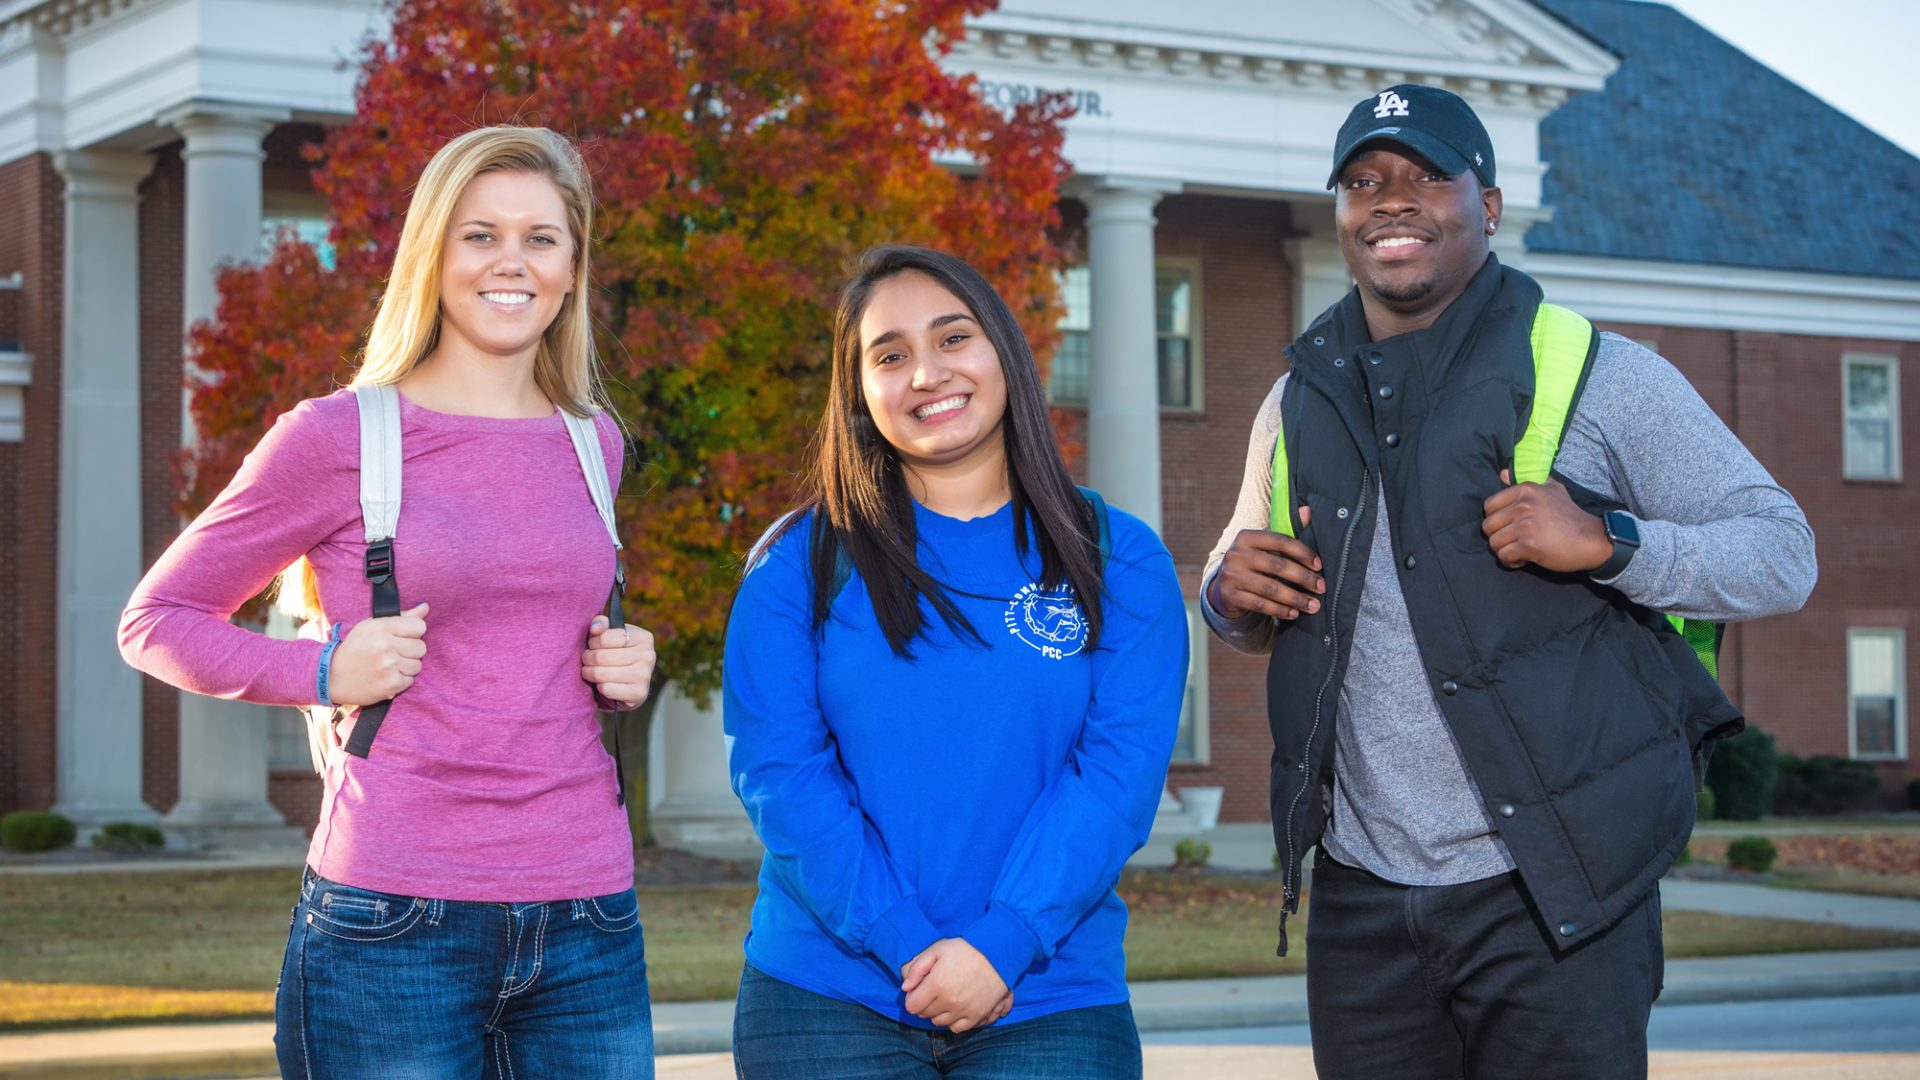 Three students smile as they stand in front of the William Fulford Building during the fall semester.